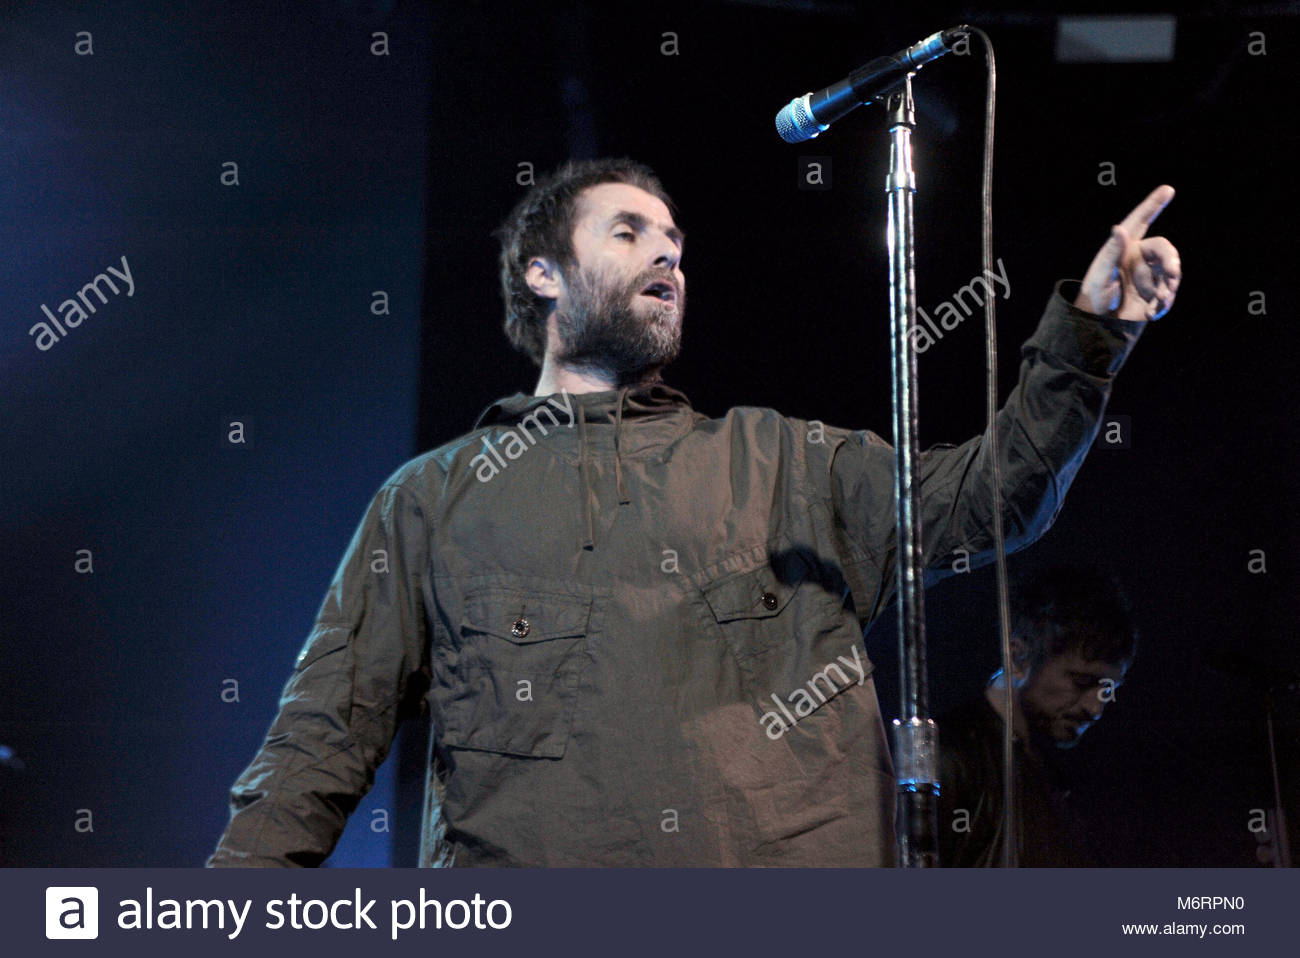 liam gallagher in concert, milan 26-02-2018 - Stock Image